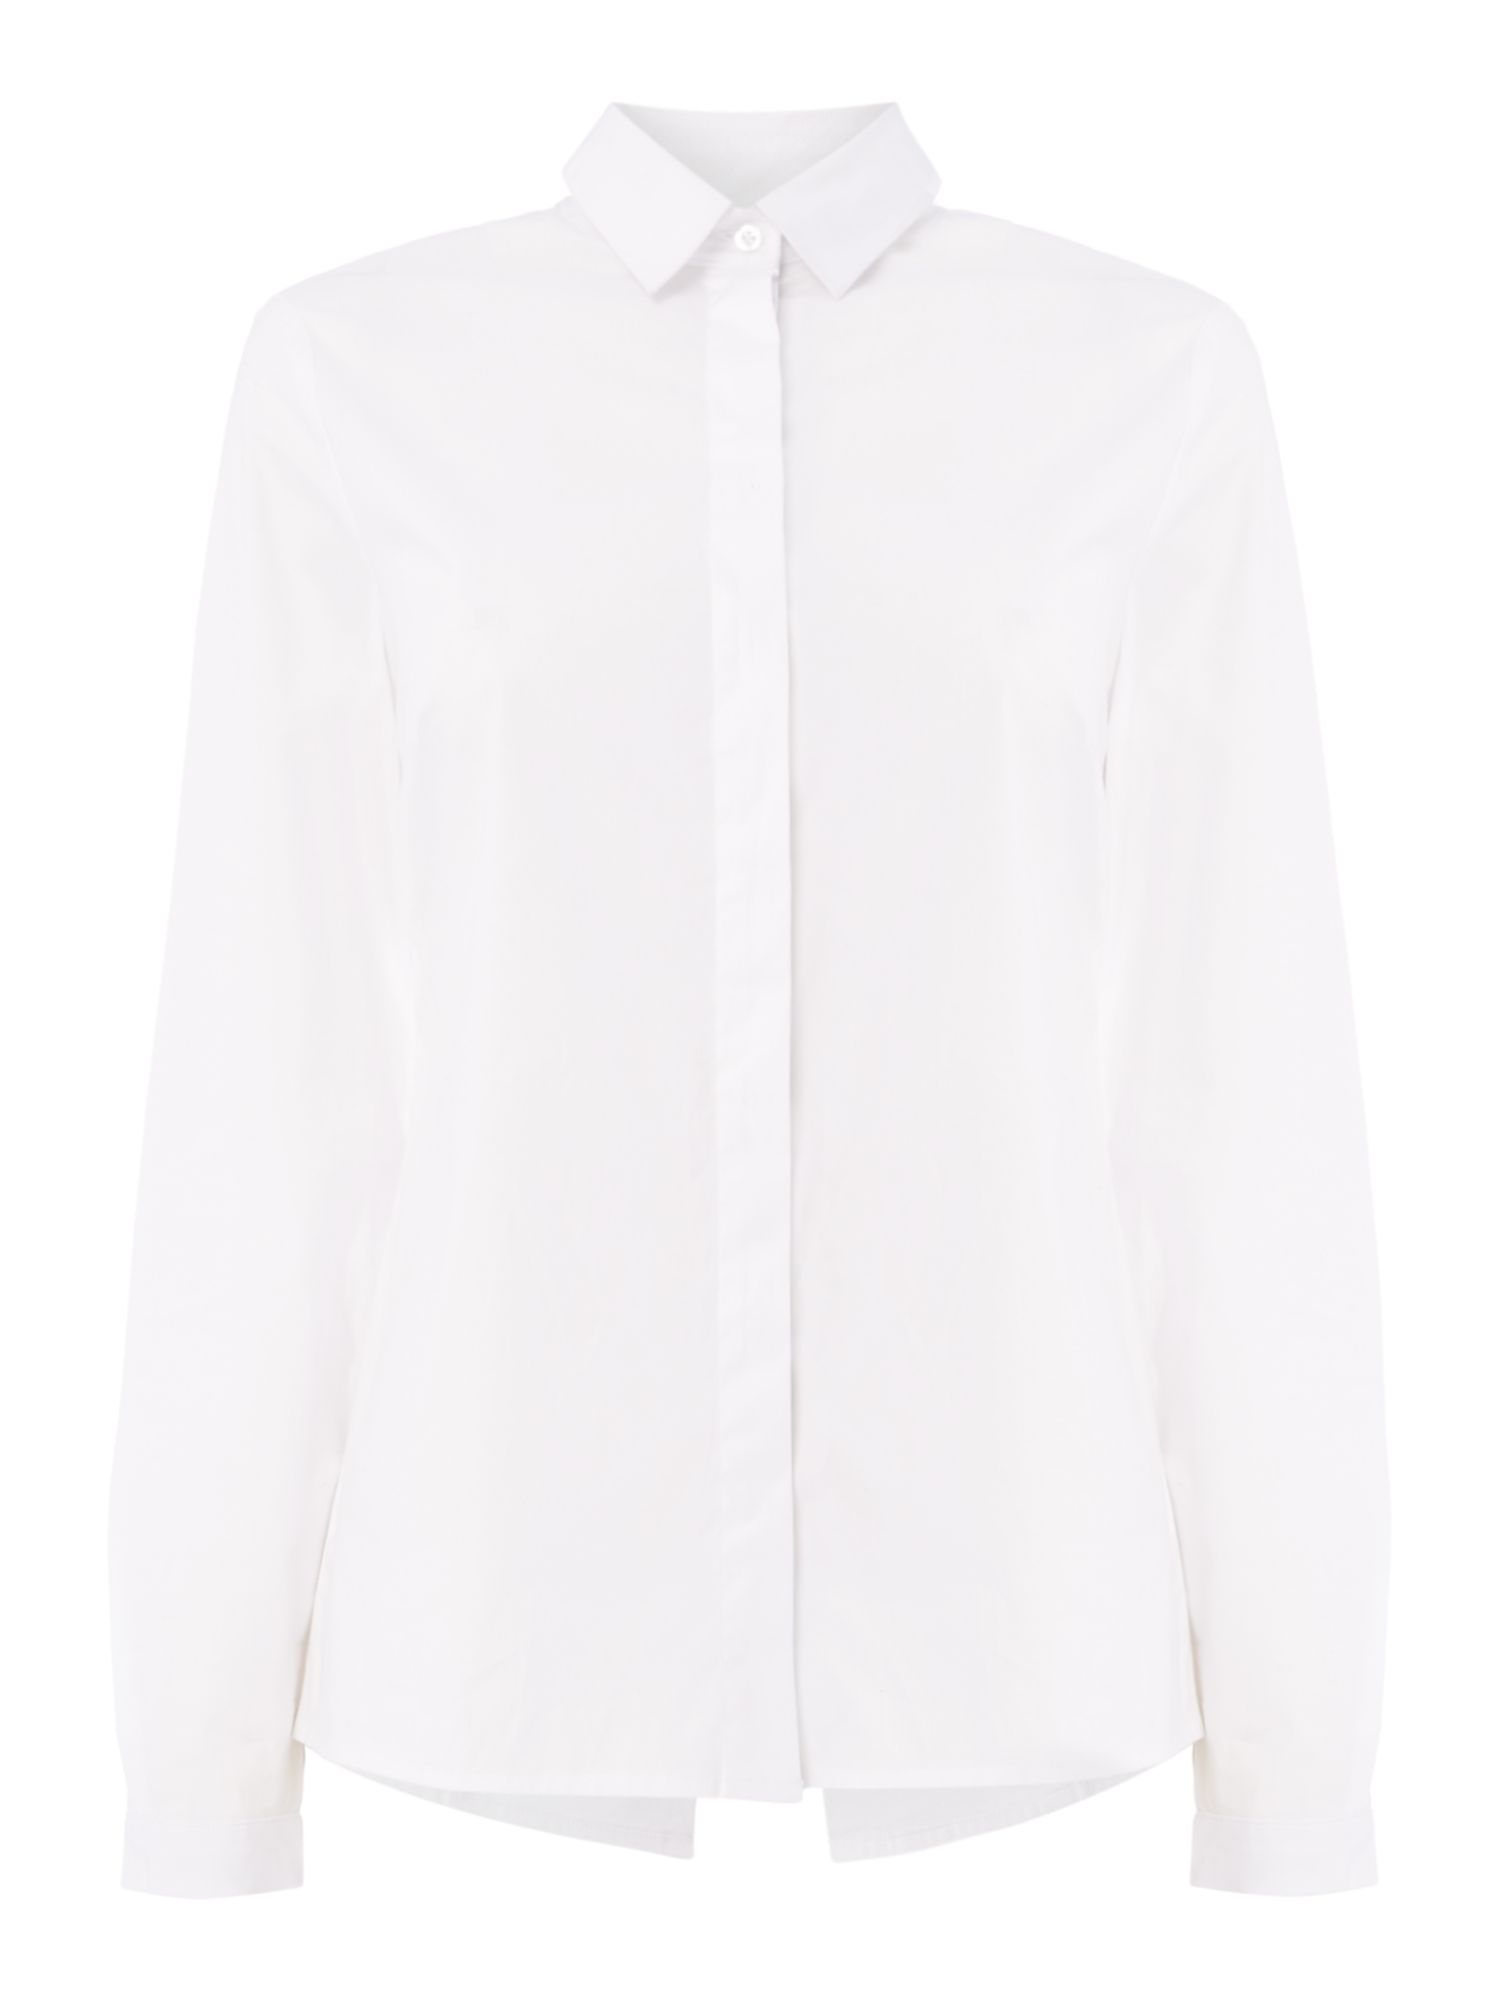 Oui White button front shirt, White